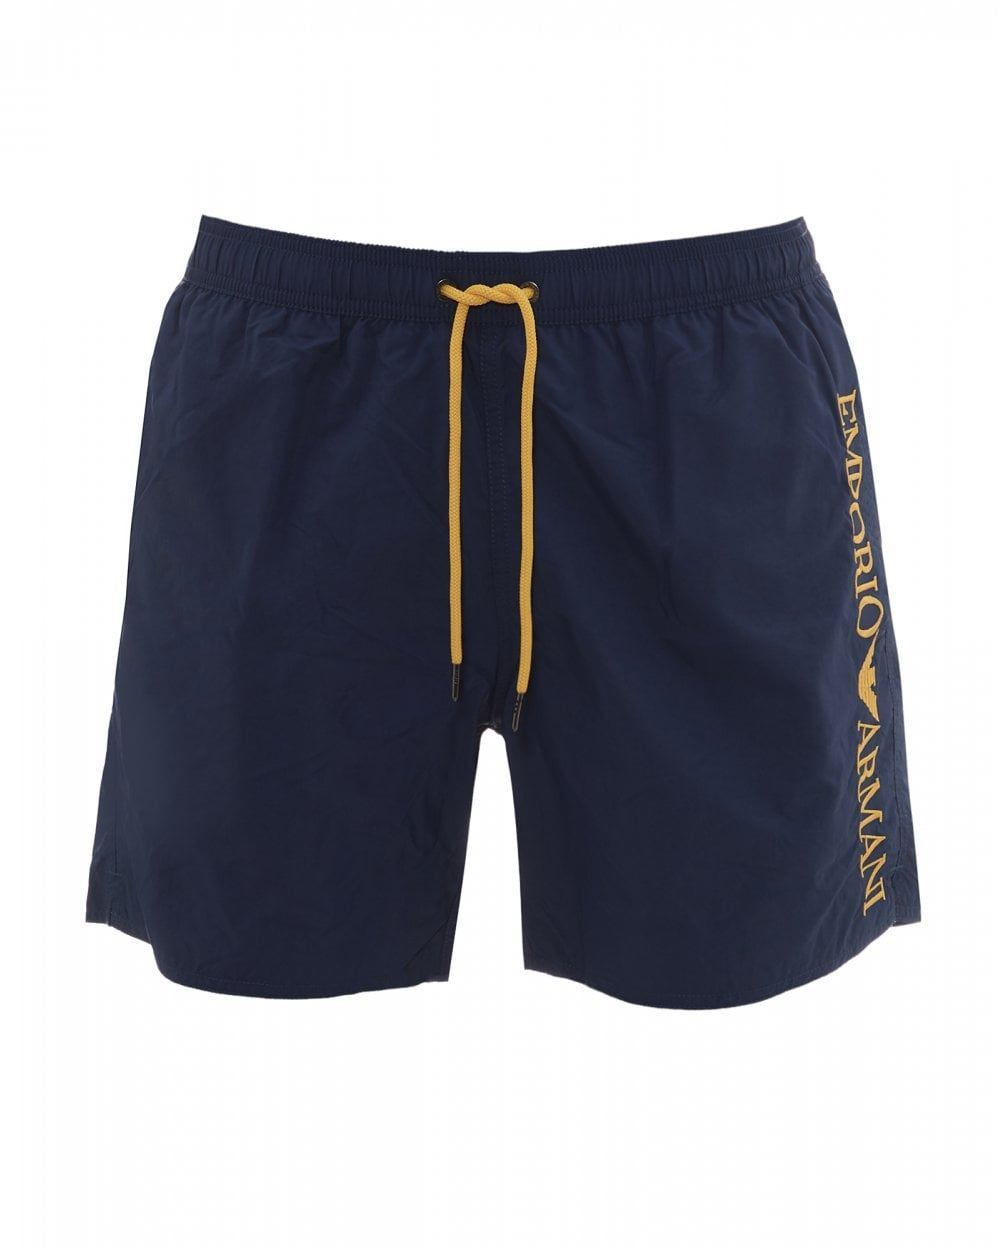 9c0bd38706 Emporio Armani Mens Side Logo Swimshorts, Blue & Yellow Trunks